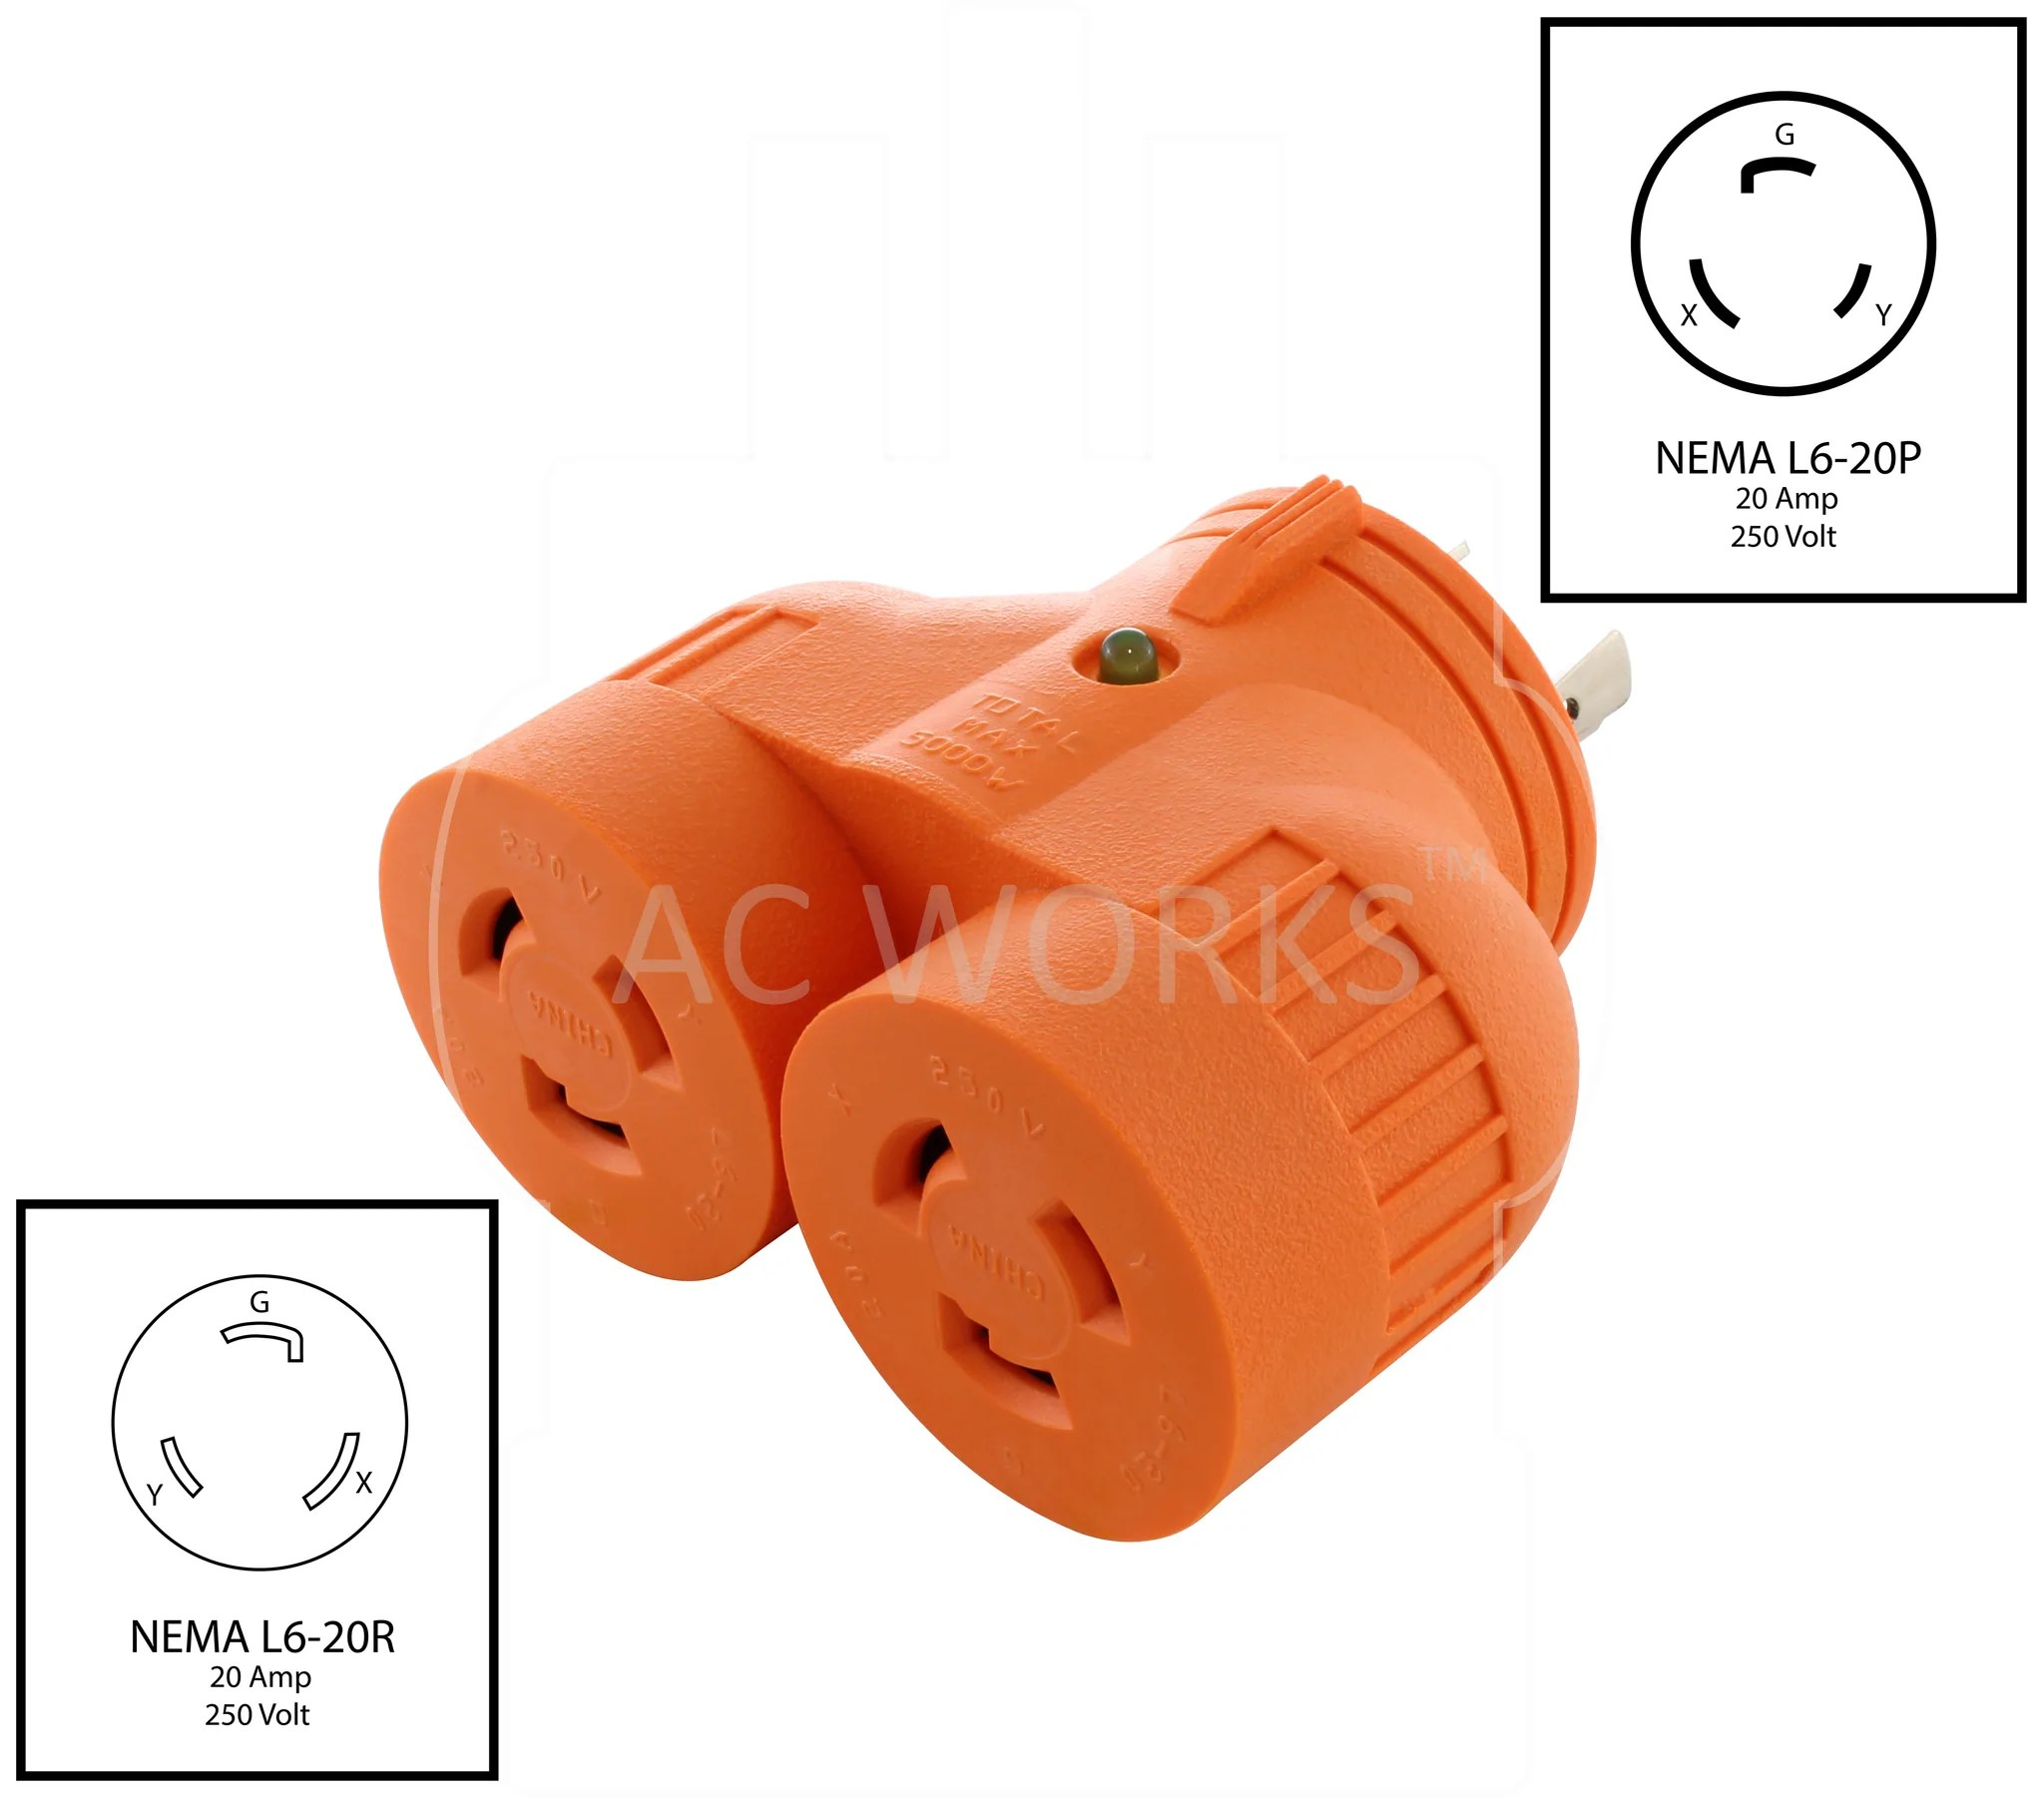 hight resolution of  nema l6 20p to nema l6 20r l620 plug to 2 l620 connectors